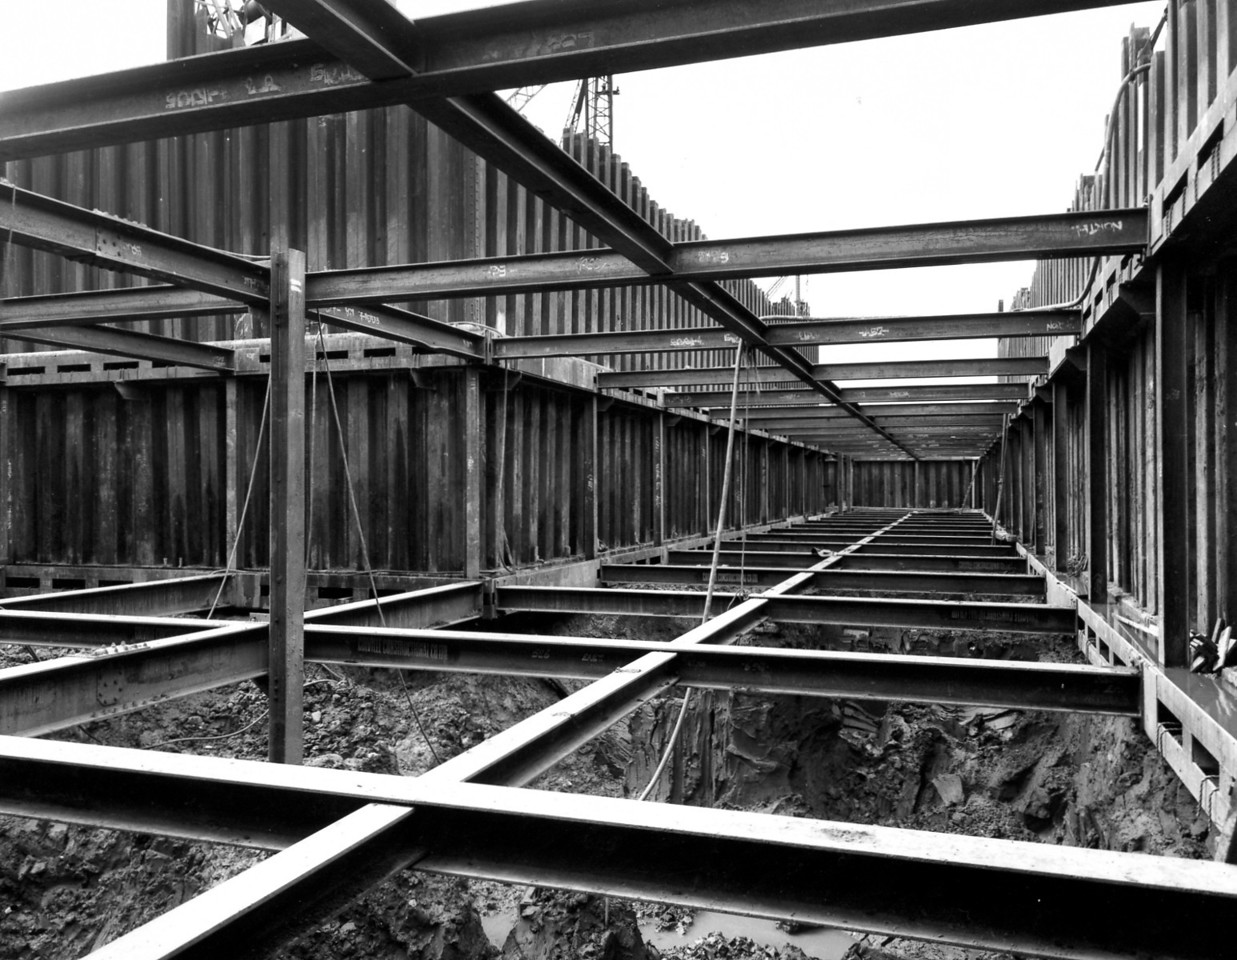 D022	Steelwork bracing inside entrance cofferdam  23/5/1962